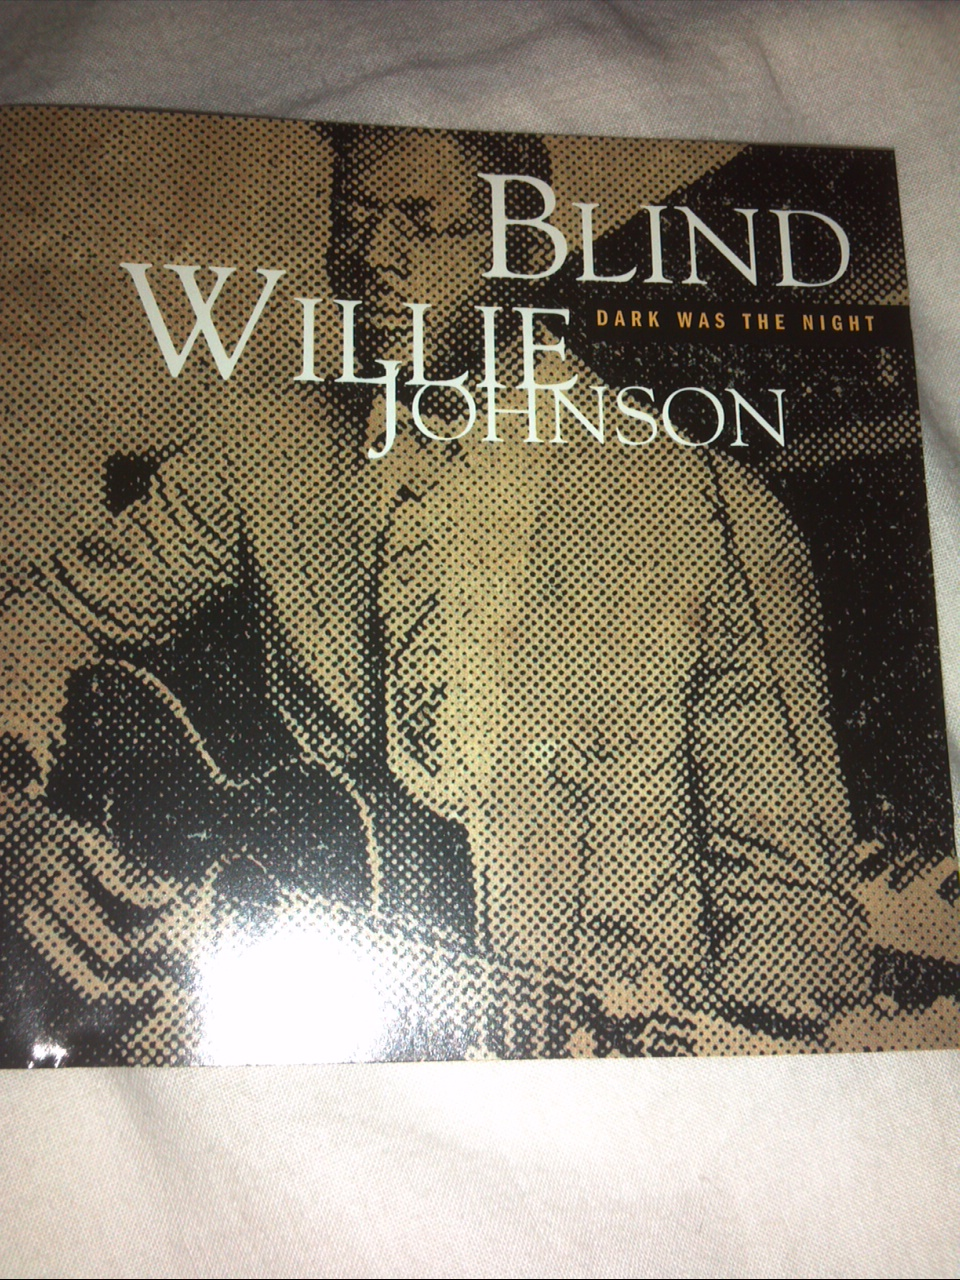 BLIND WILLIE JOHNSON;dark was the night